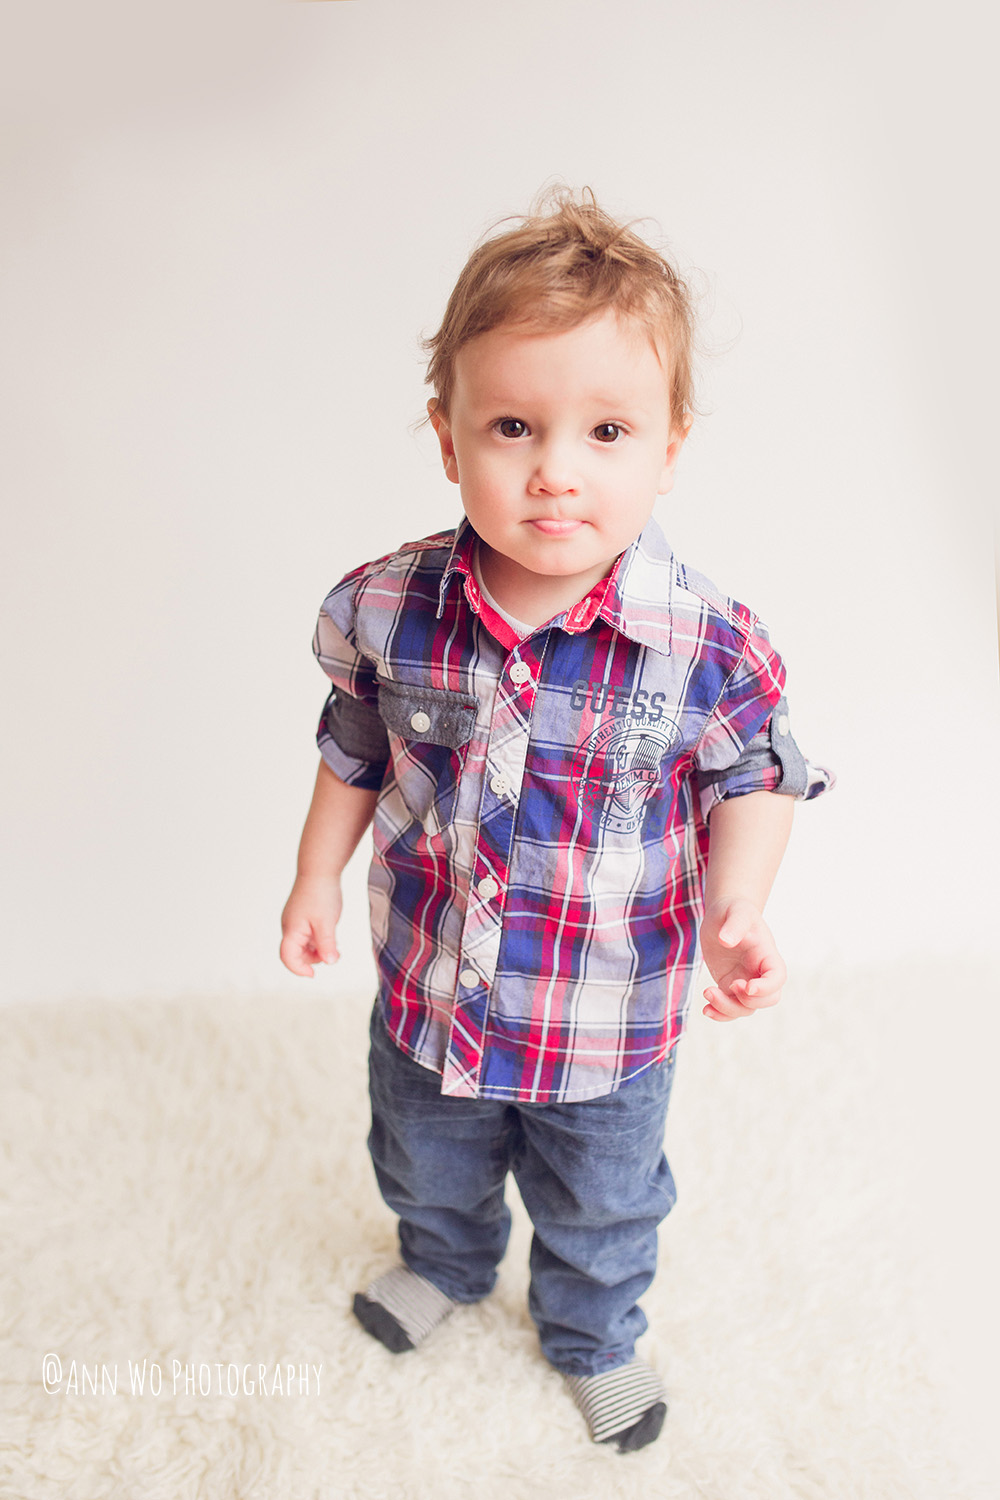 ann-wo-child-photograph-london-lifestyle-session-toddler-boy-family-pictures-05.JPG